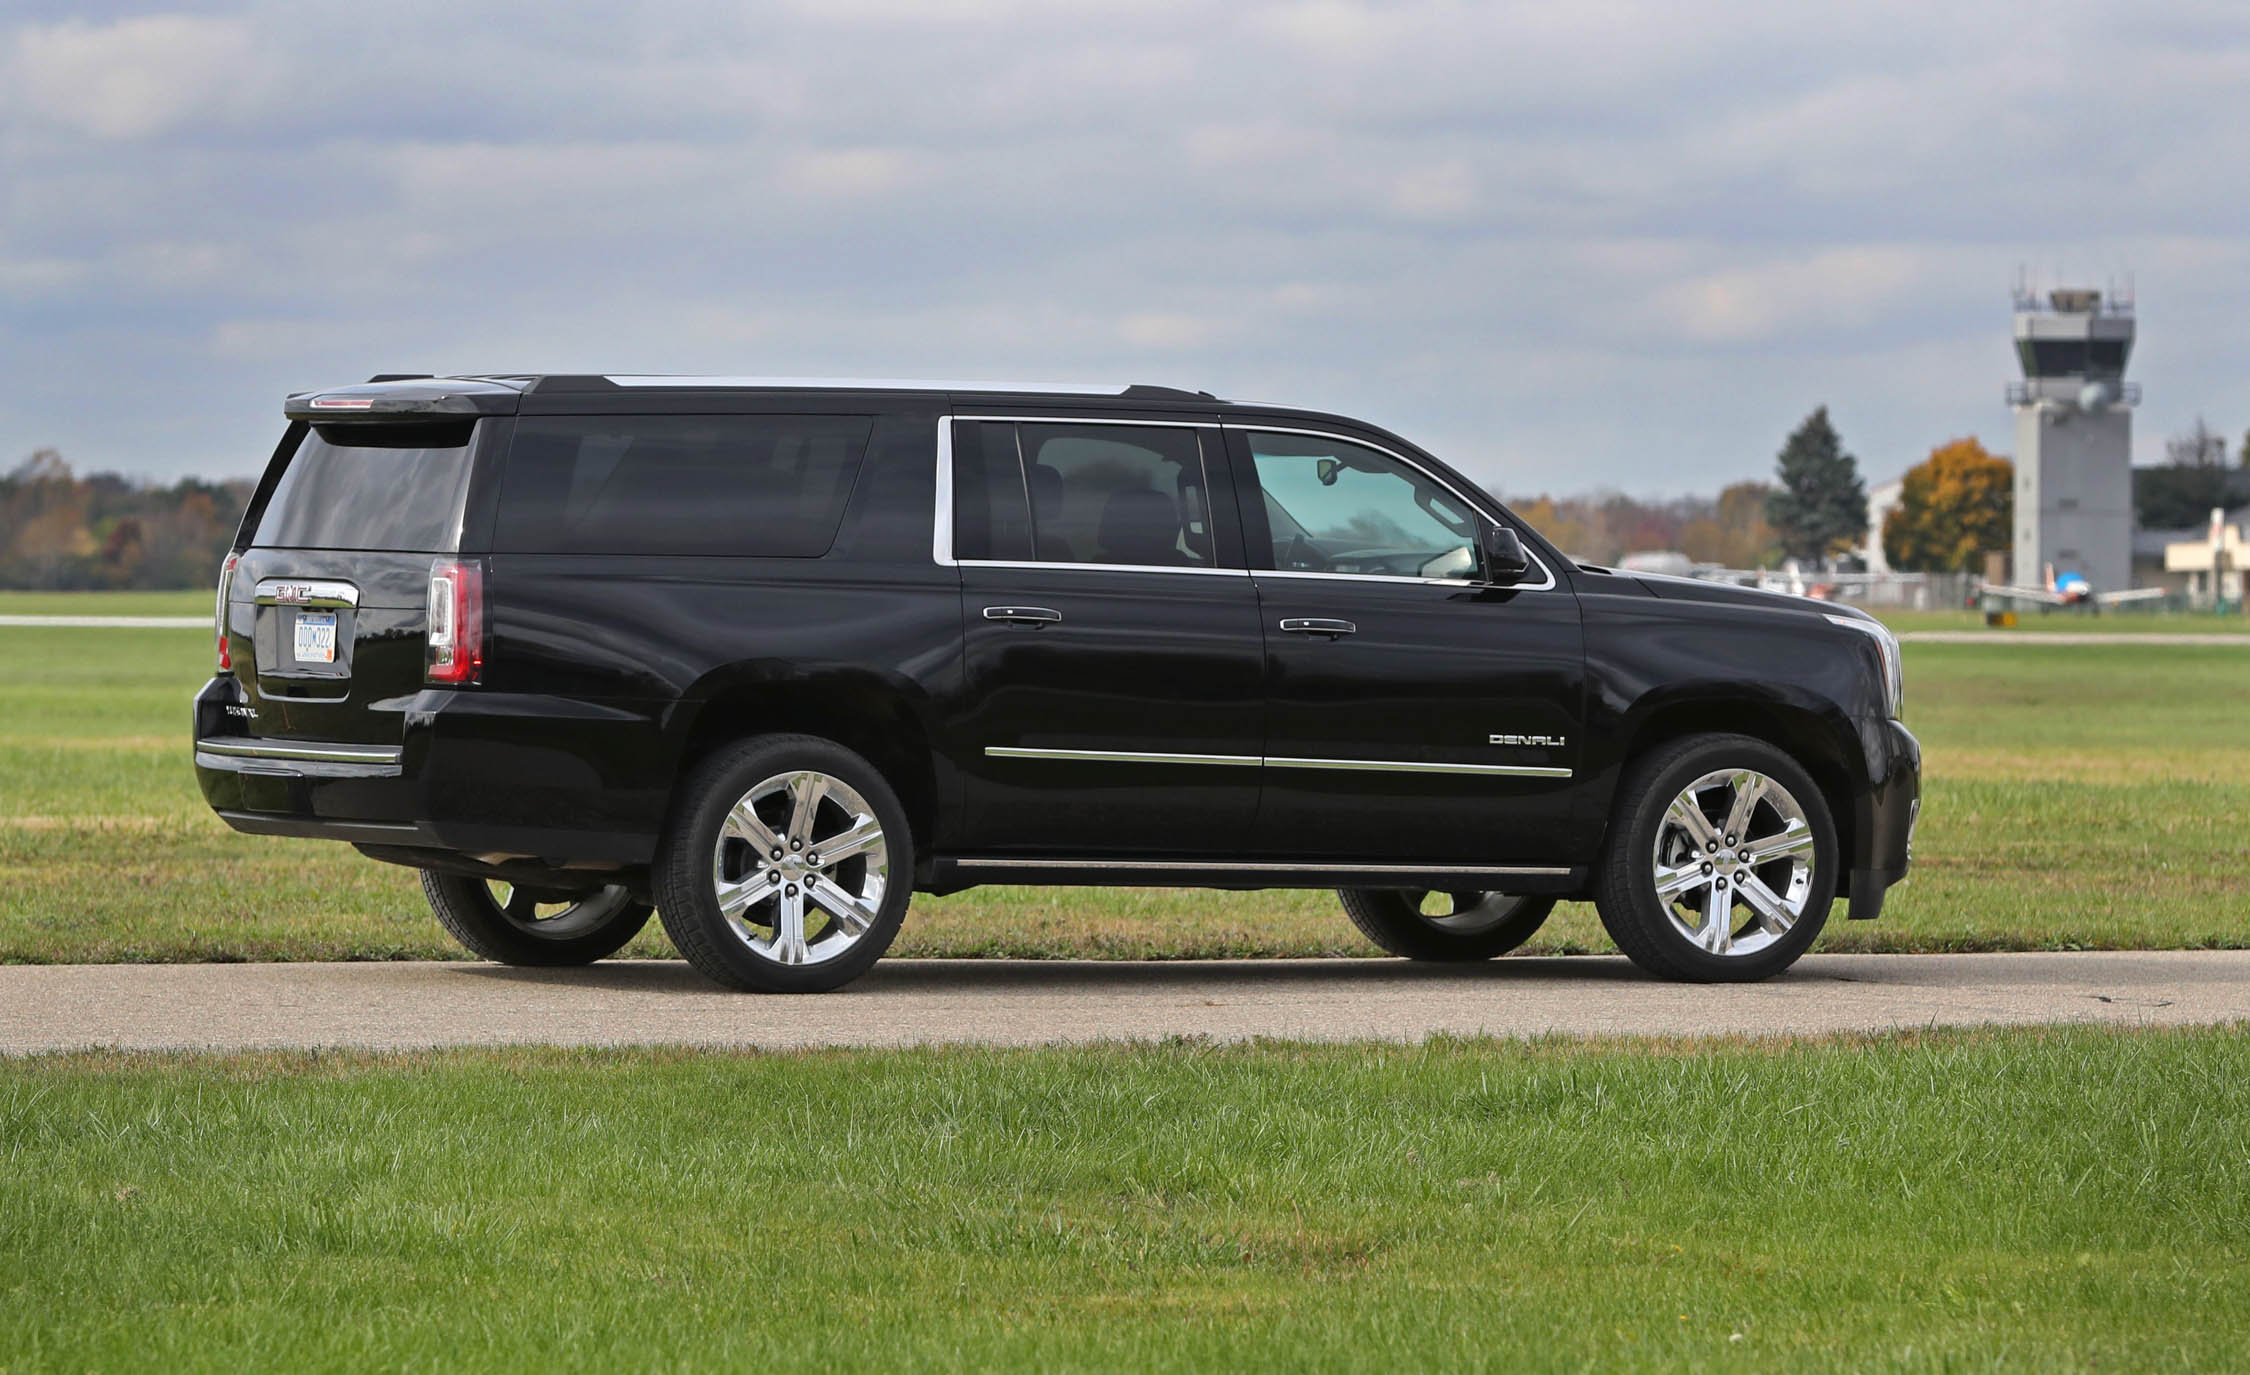 2017 Gmc Yukon Xl Denali Exterior Side And Rear (Photo 9 of 26)